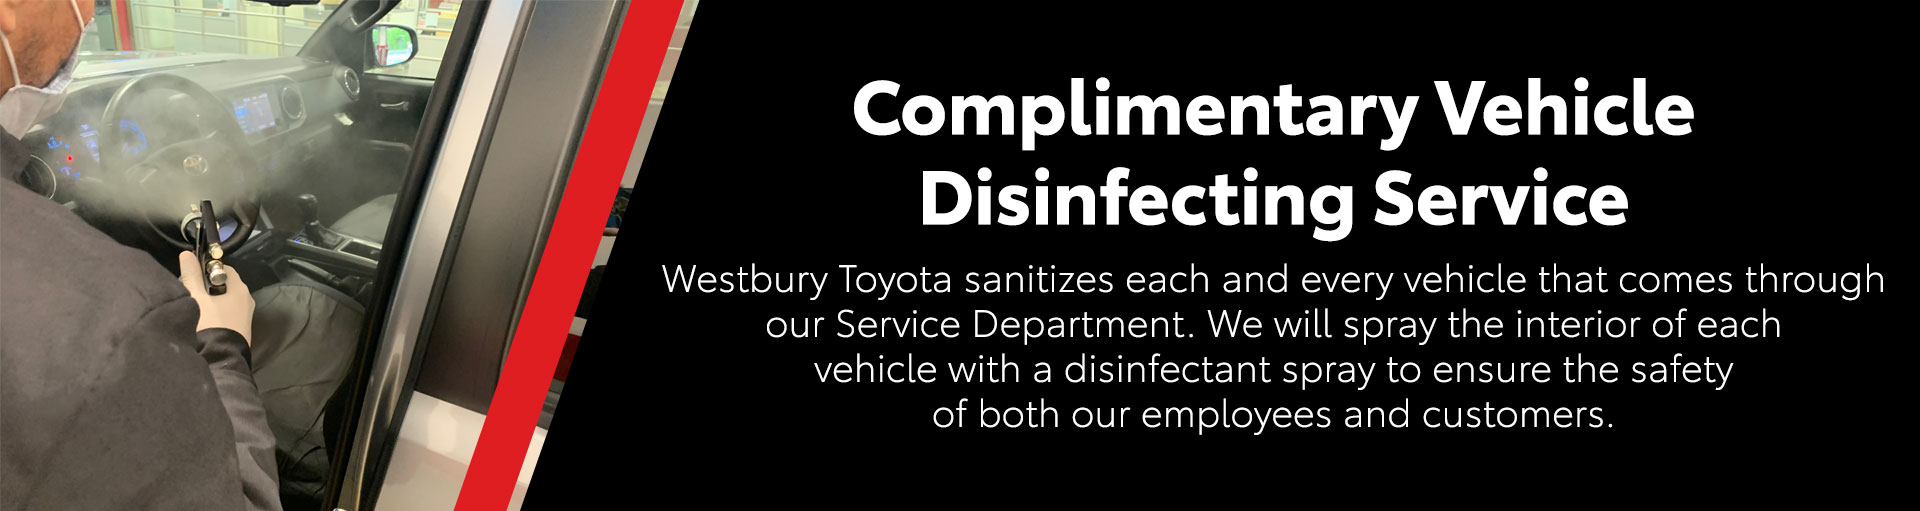 Toyota Vehicle Disinfecting Service